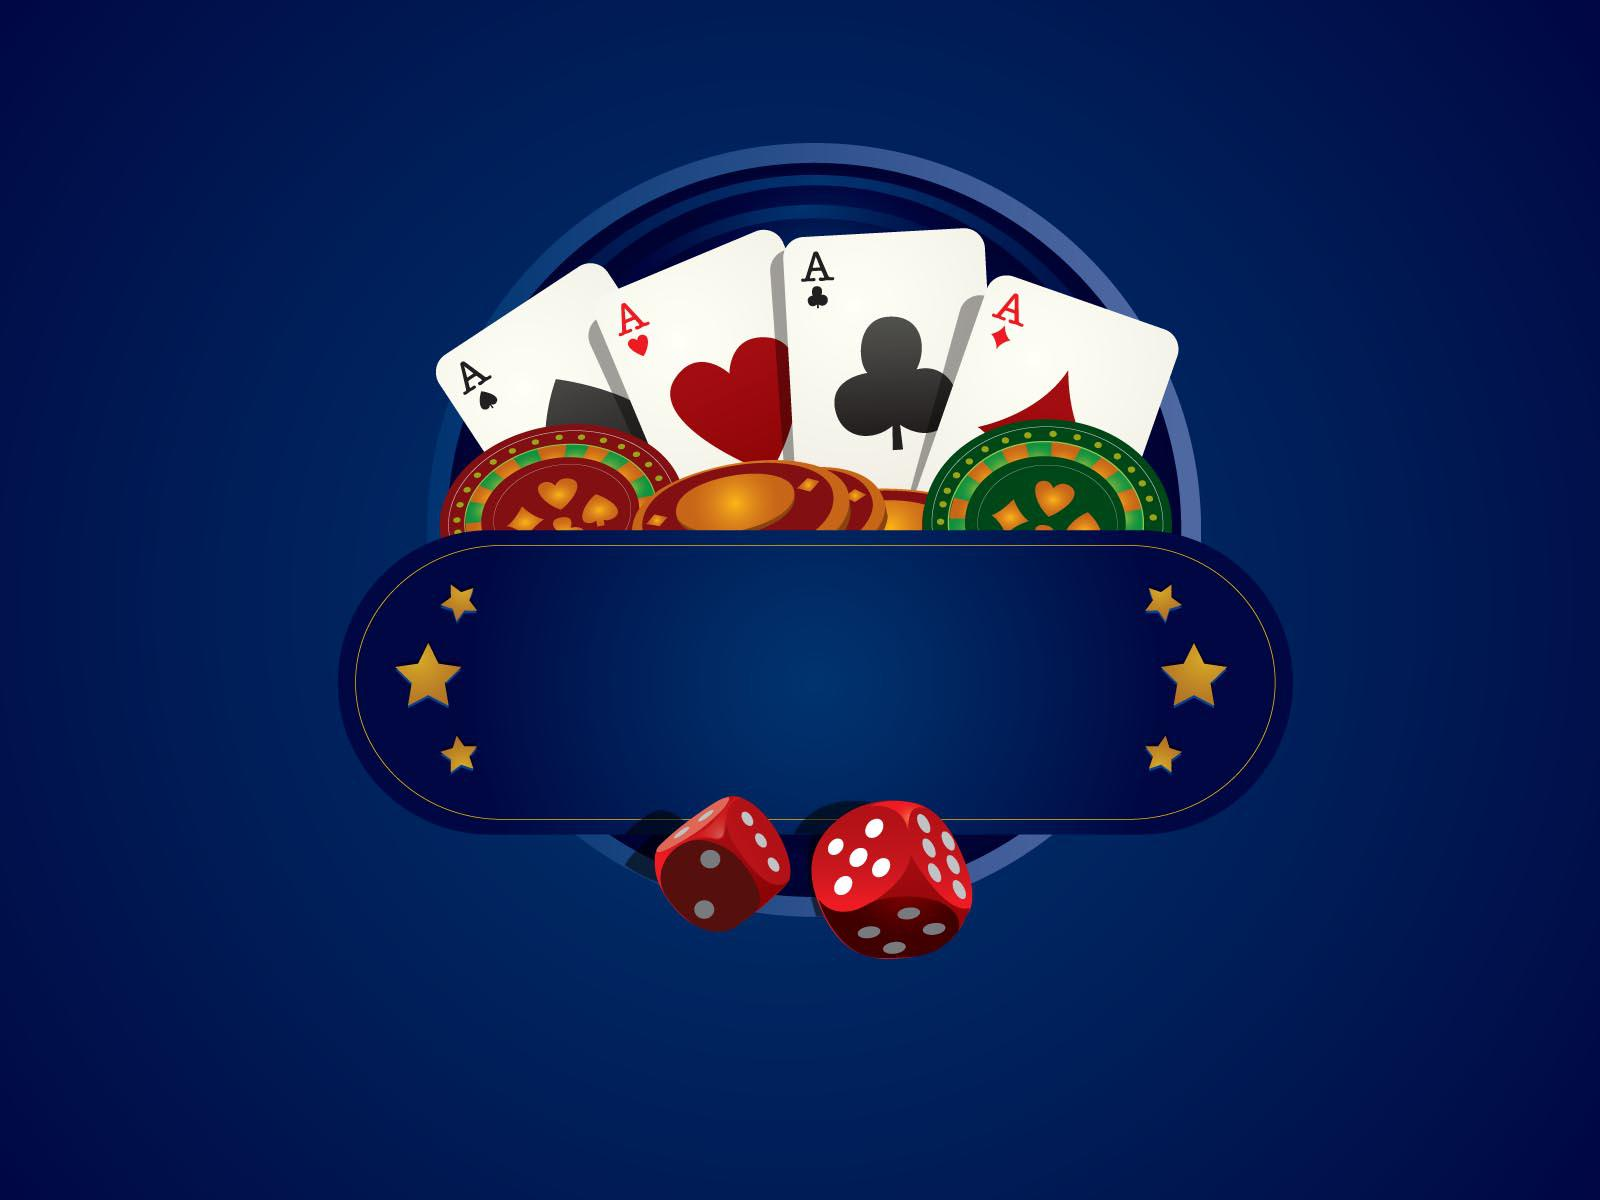 The Selecting Online Casino